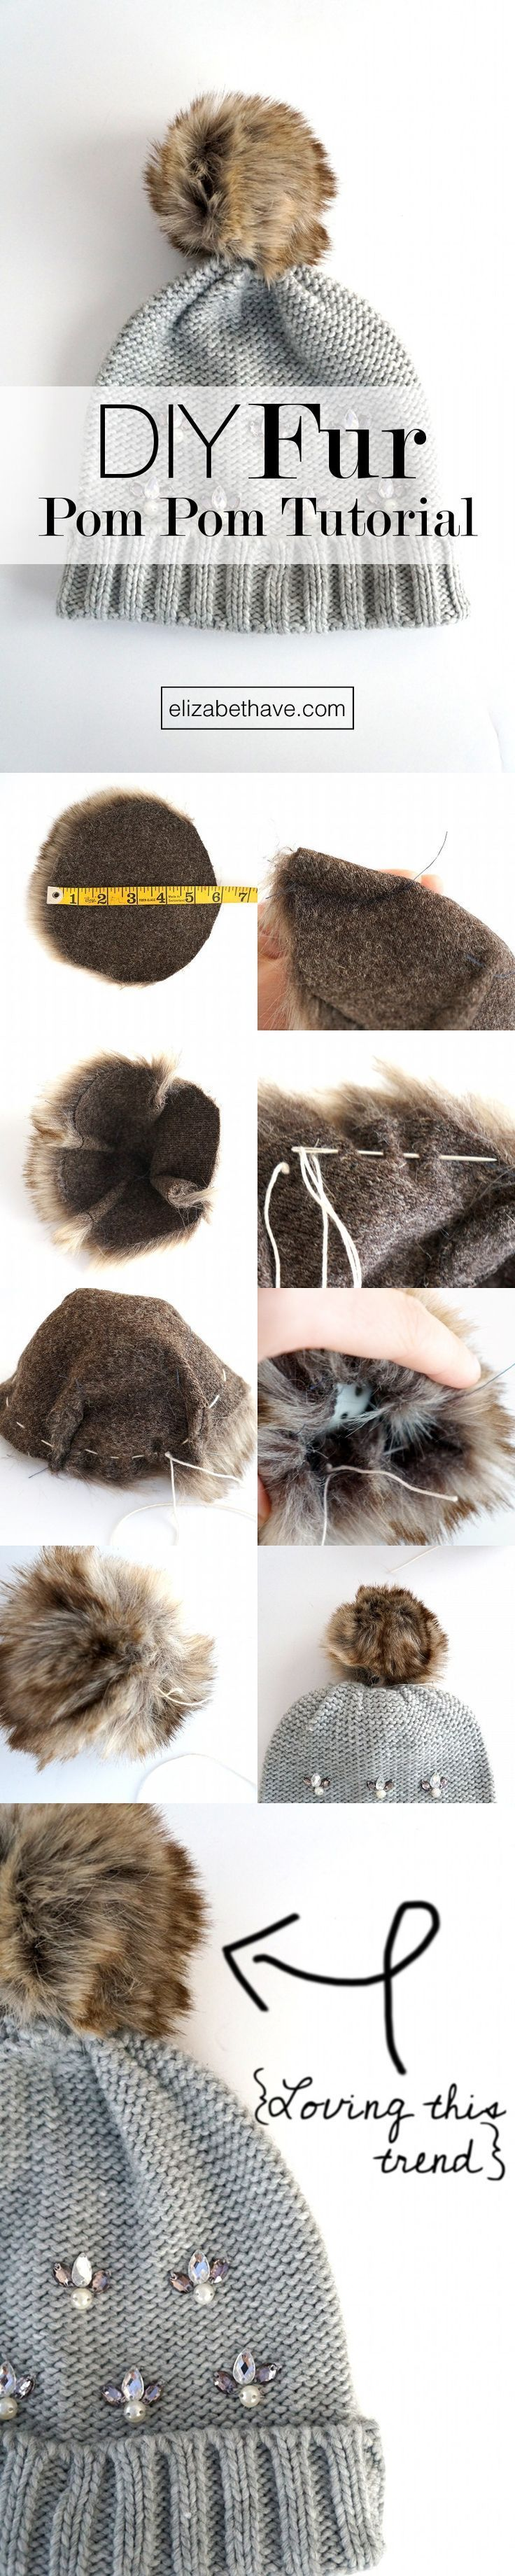 DIY Fur Pom Pom Tutorial   These pom poms are everywhere right now. If you have some scraps of faux fur laying around, this is the perfect sewing tutorial to use it up! Once you've made the fur pom pom, sew it on whatever you like!